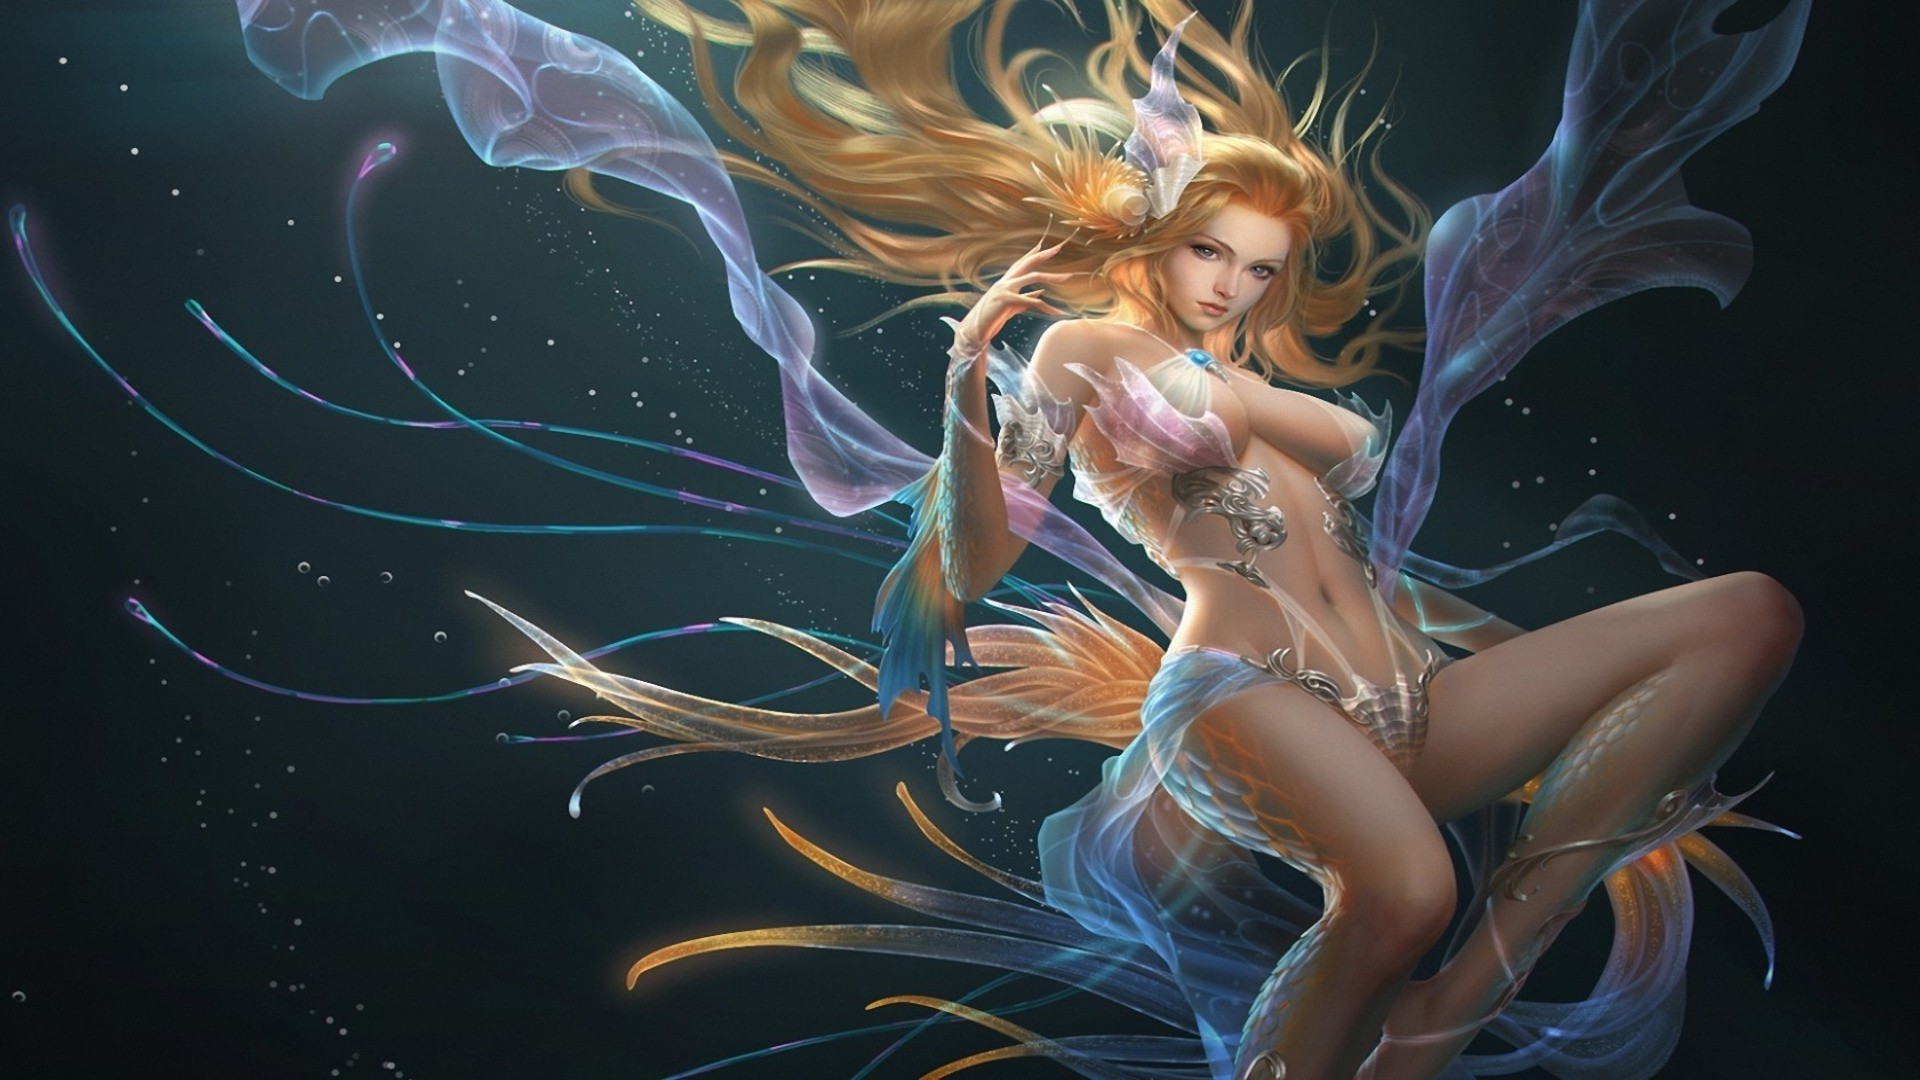 magical animals woman beautiful girl motion desktop fantasy art